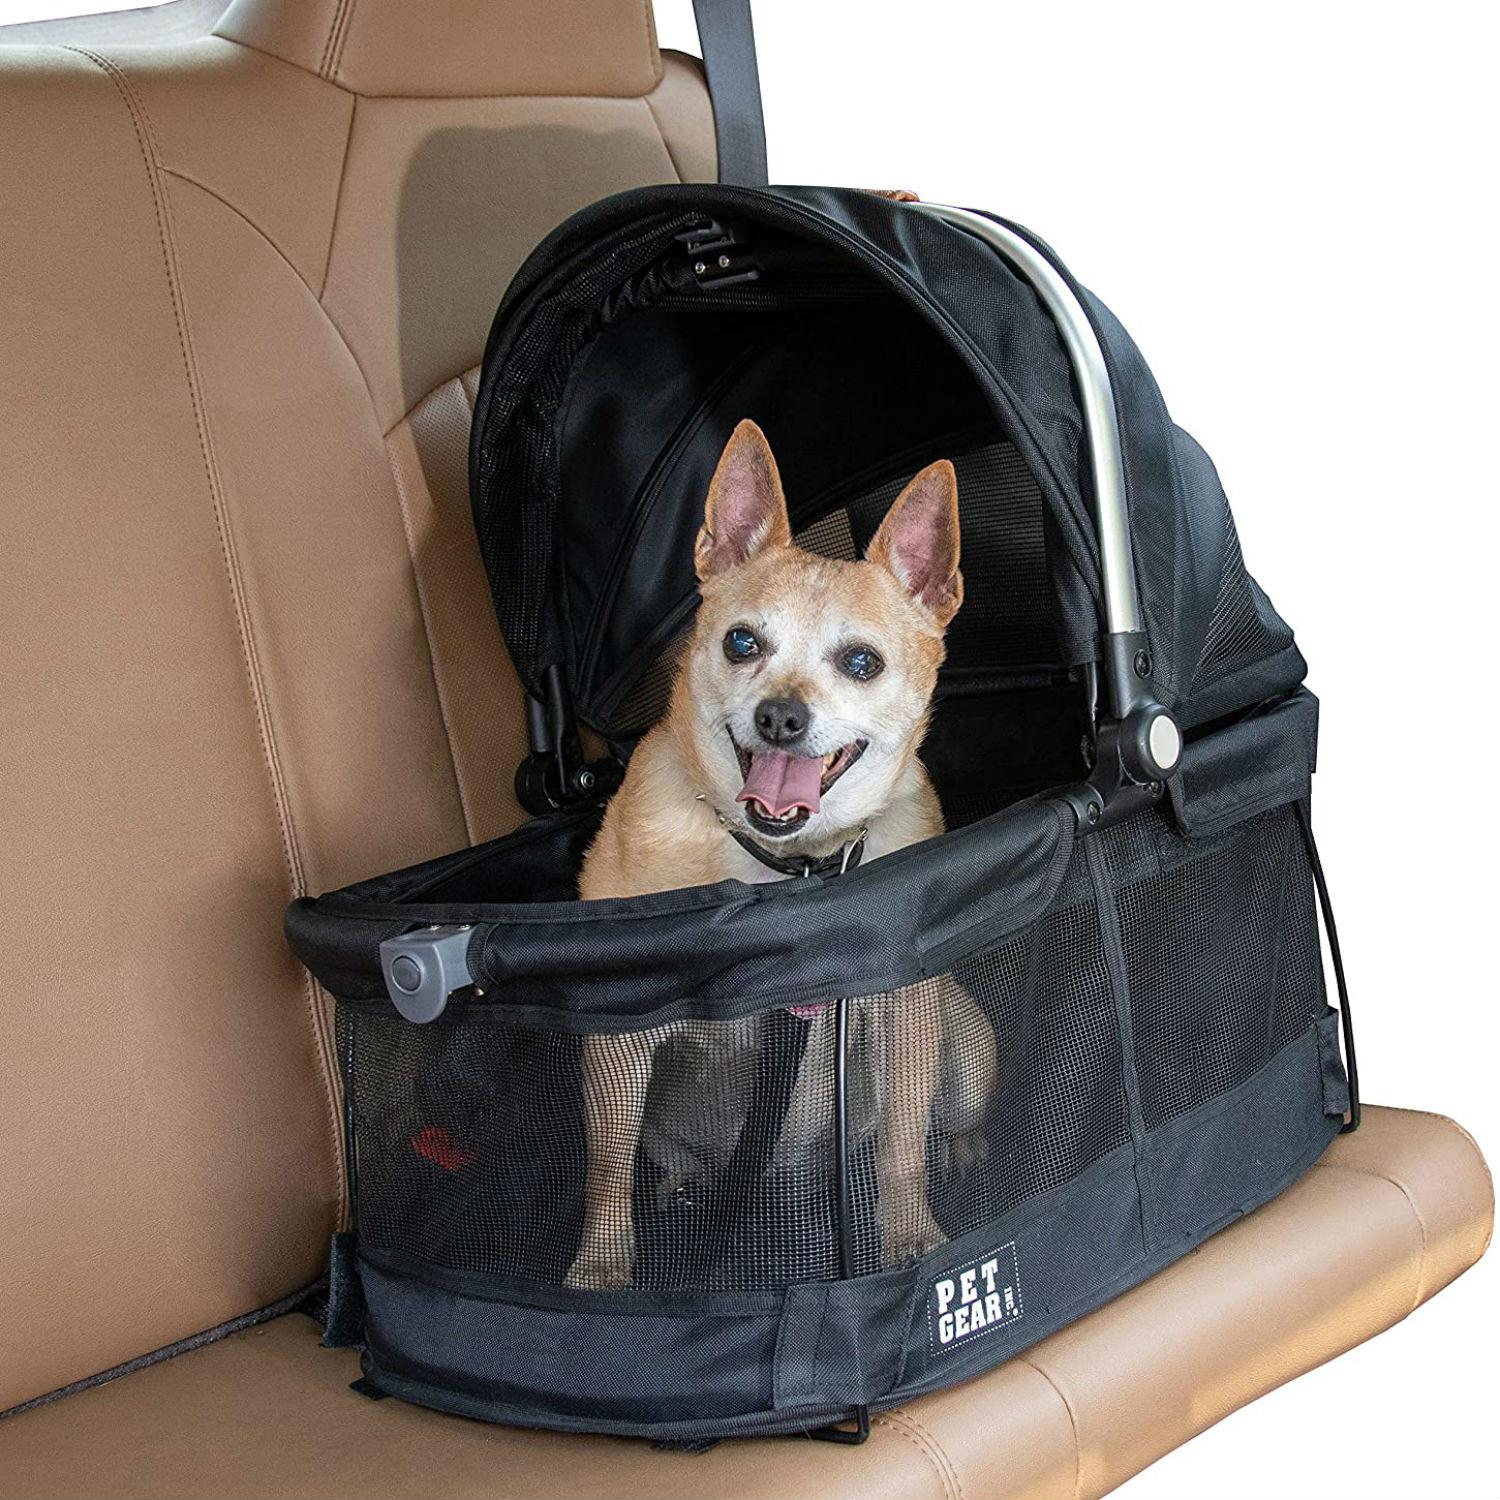 Pet Gear View 360 Dog and Cat Carrier - Black